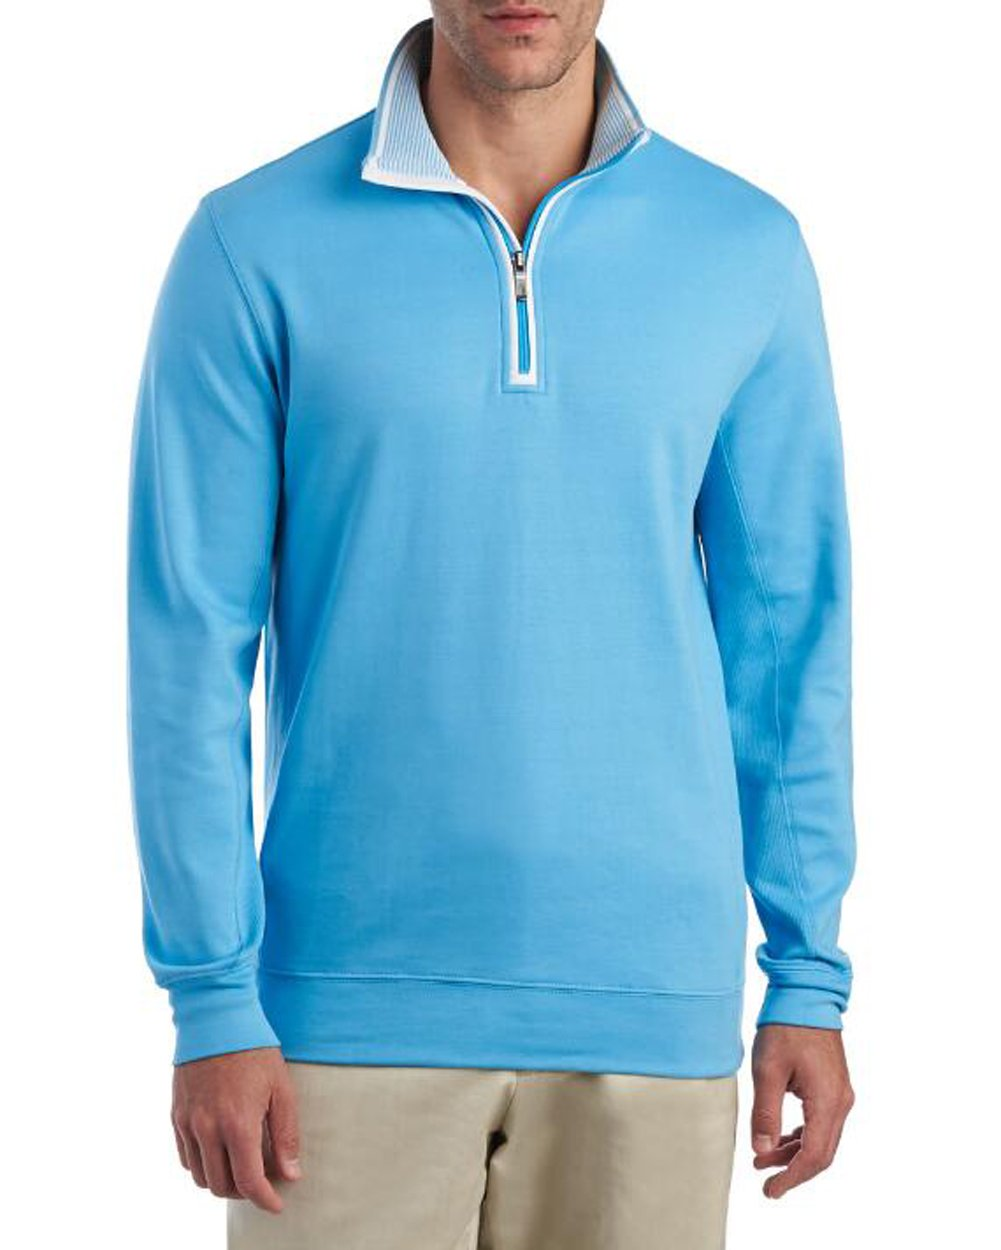 Bobby Jones Men's Leaderboard 1/4 Zip Pullover (2X-Large, Turquoise)